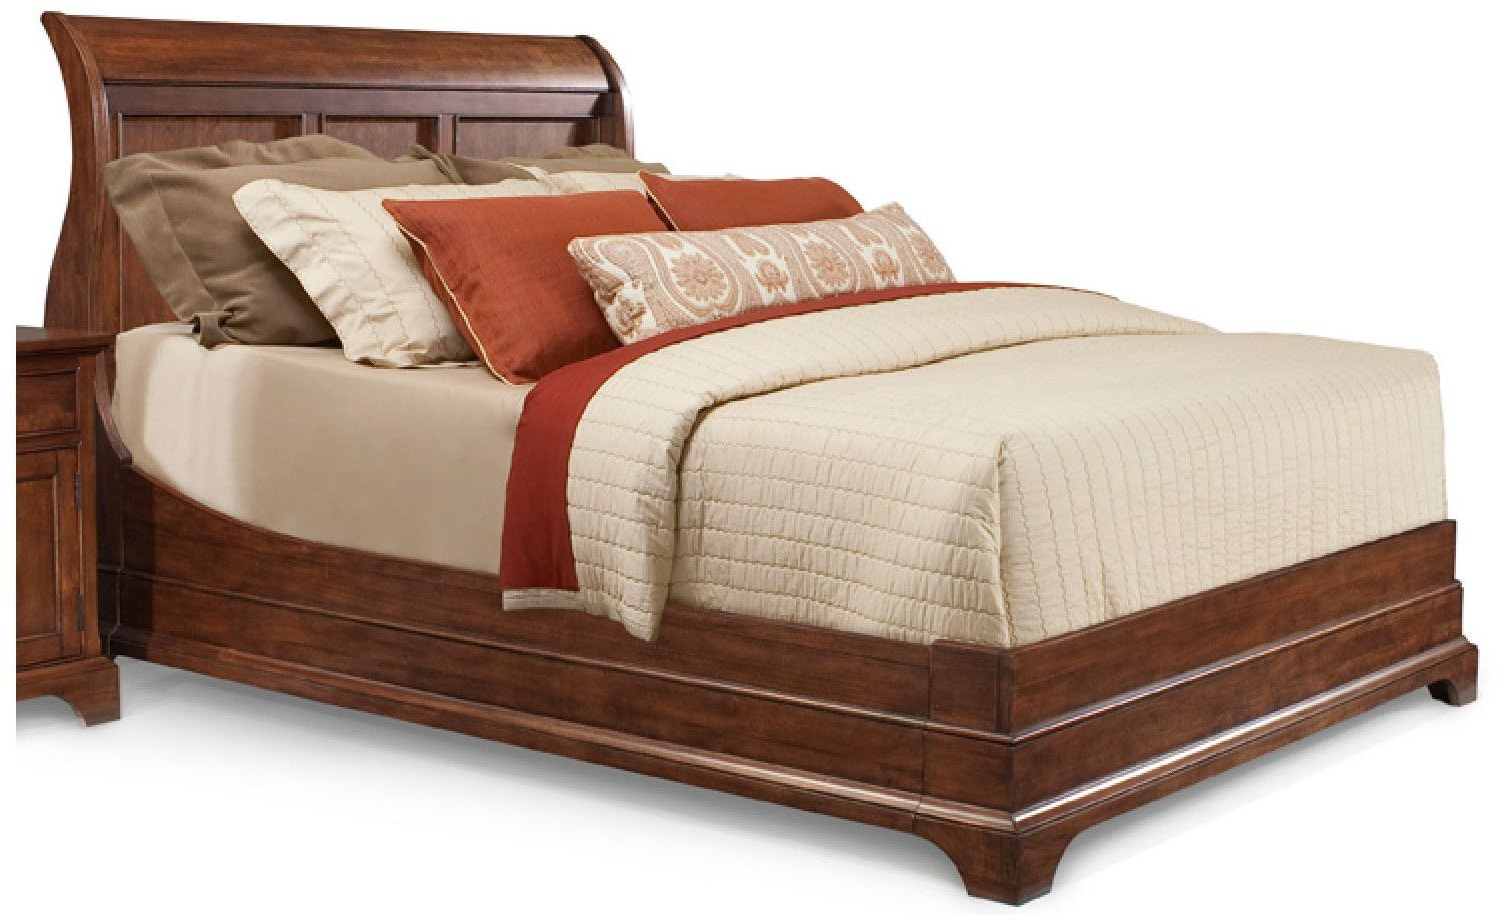 Cresent Fine Furniture Bedroom Retreat Cherry Sleigh Bed California King 6 0 1532 Cal King